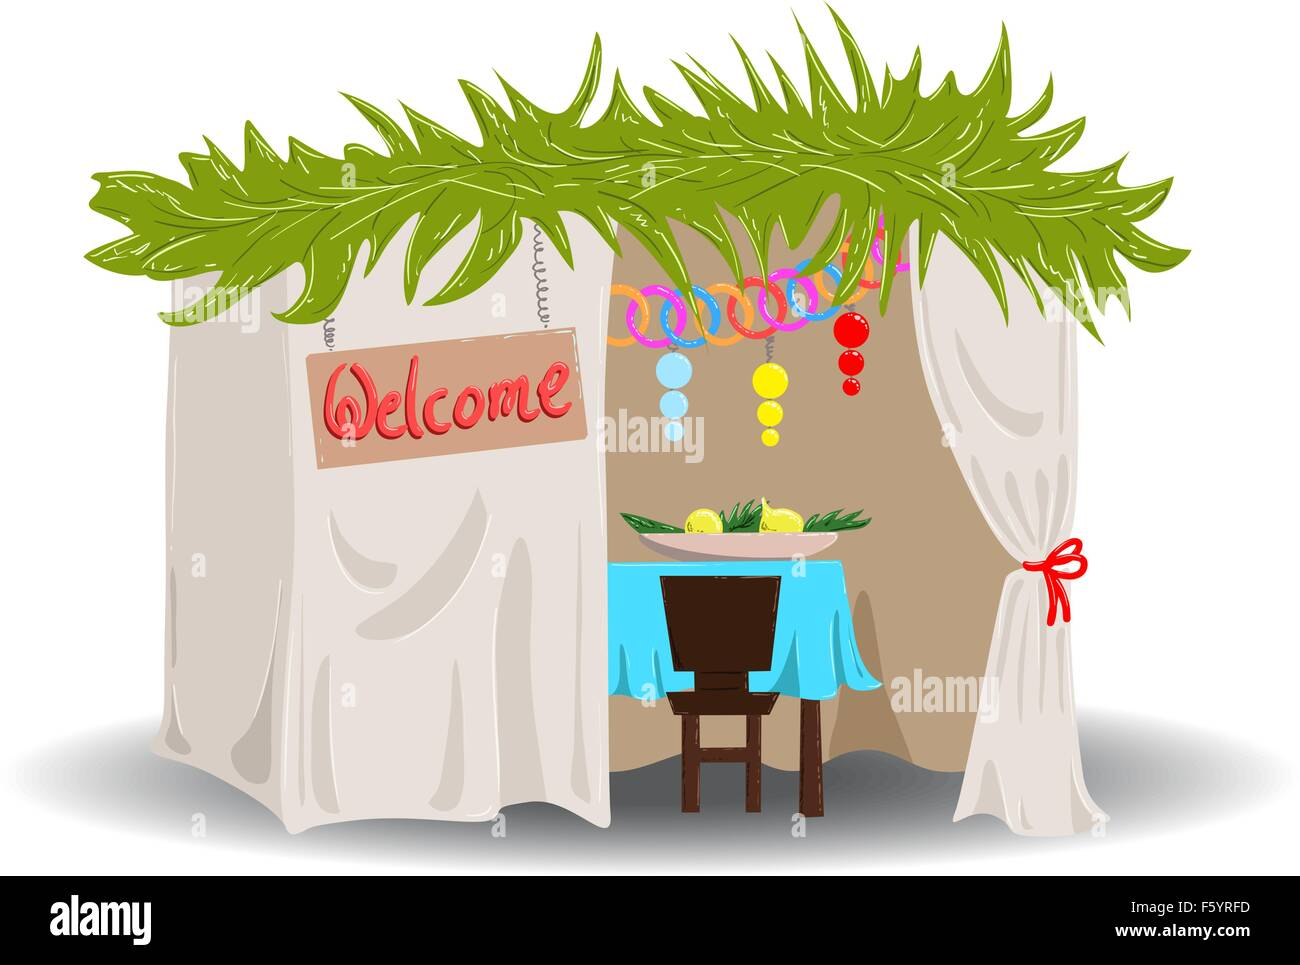 A Vector illustration of a Sukkah decorated with ornaments for the Jewish Holiday Sukkot. - Stock Image